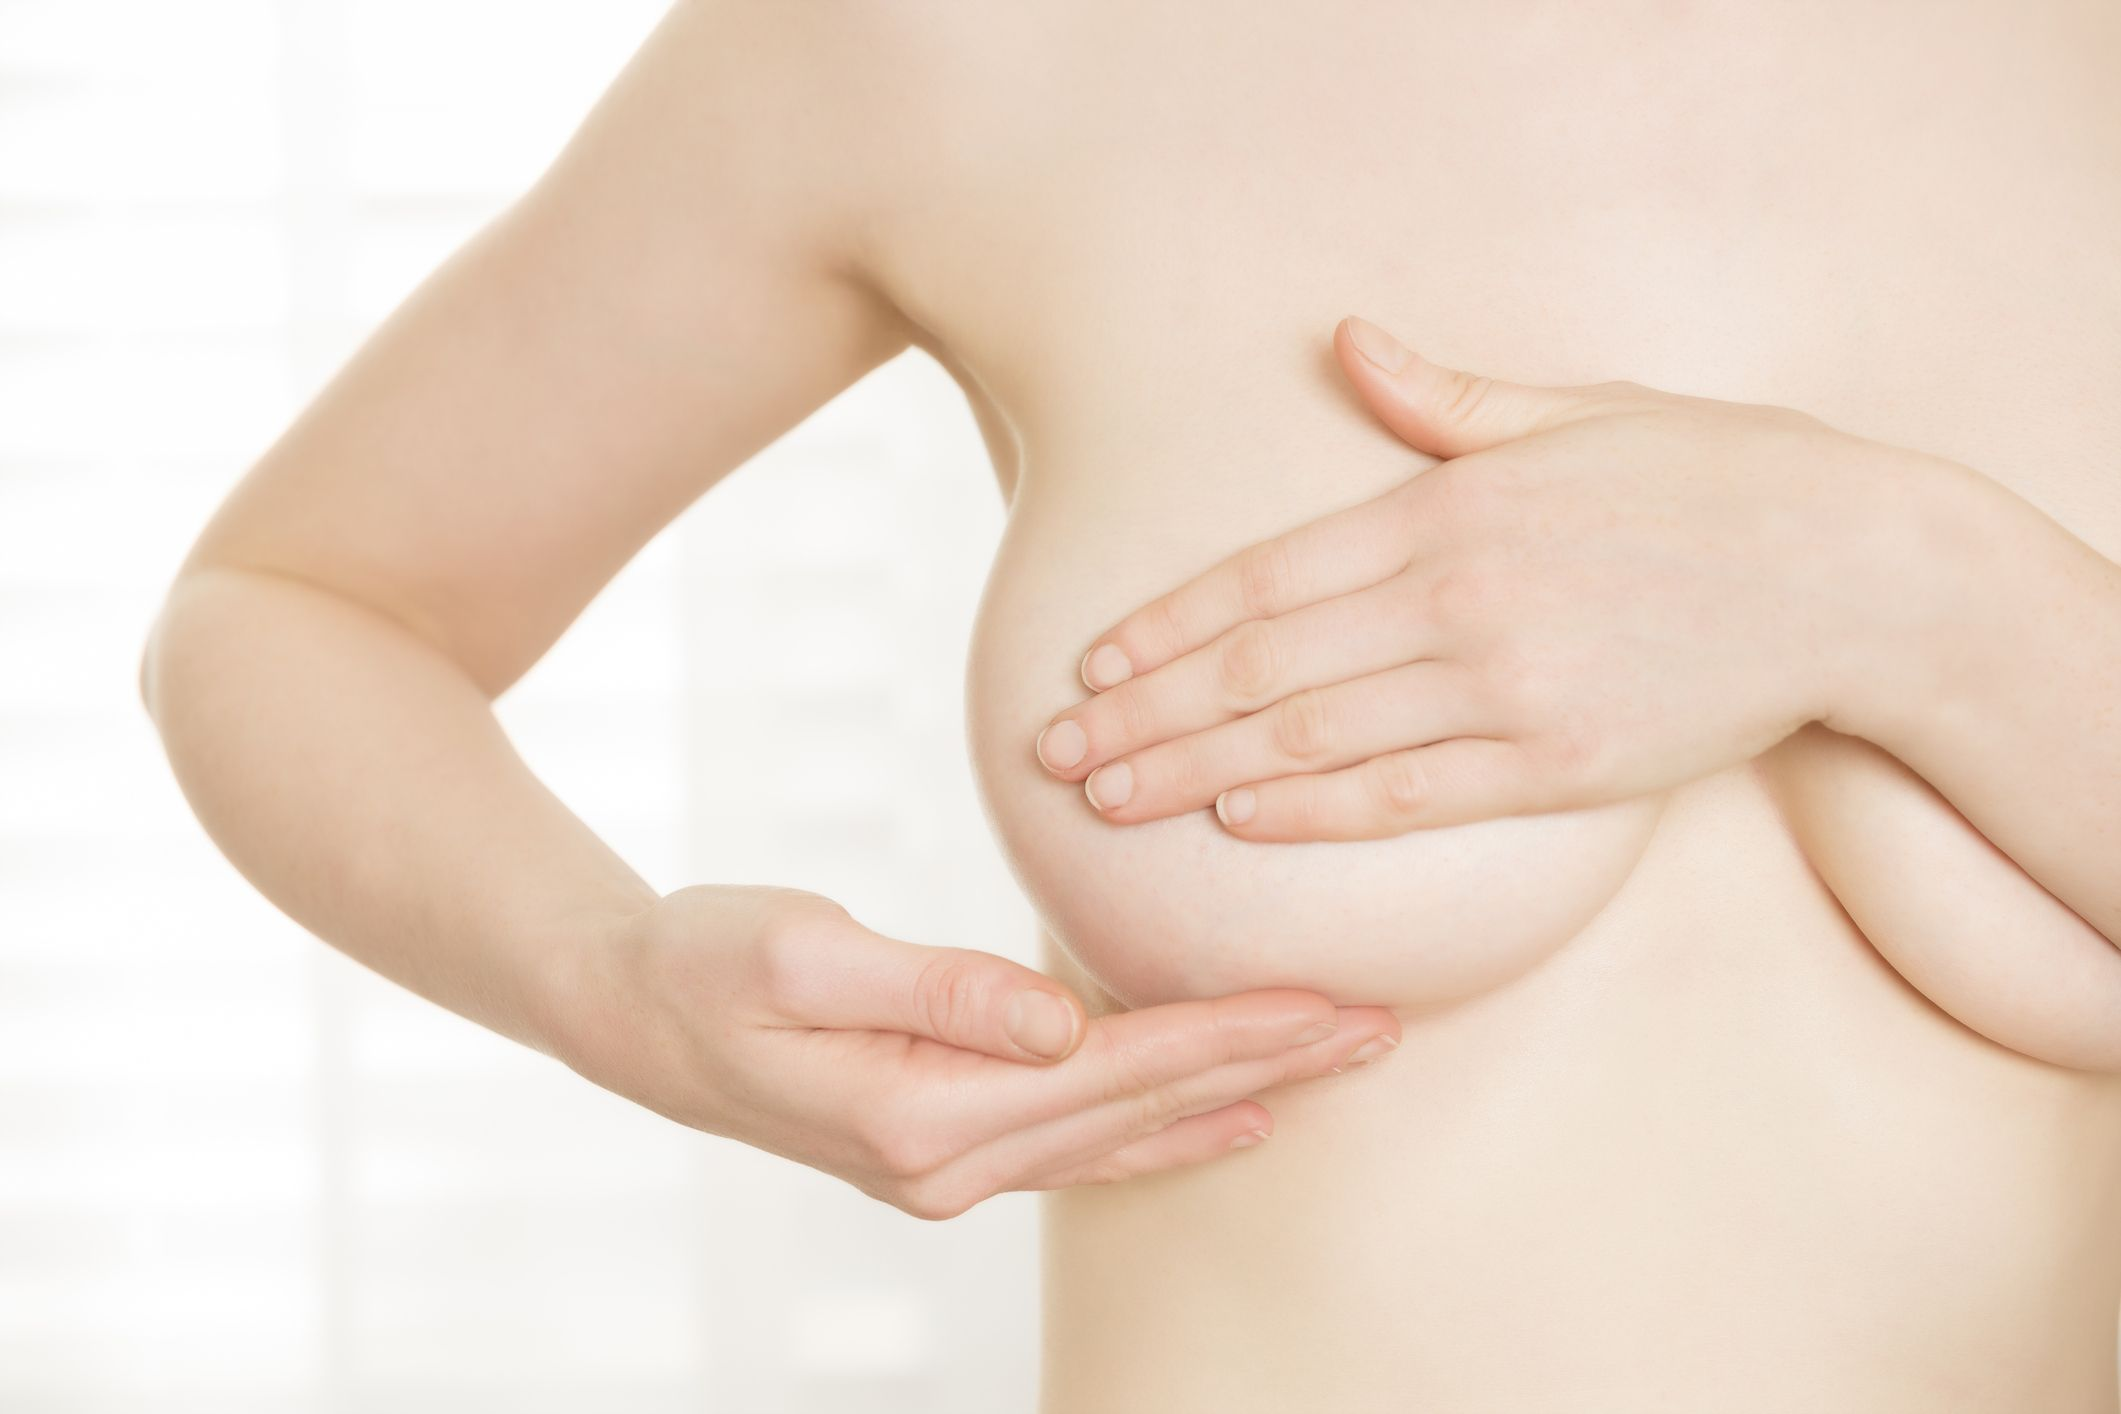 Having pain in breast